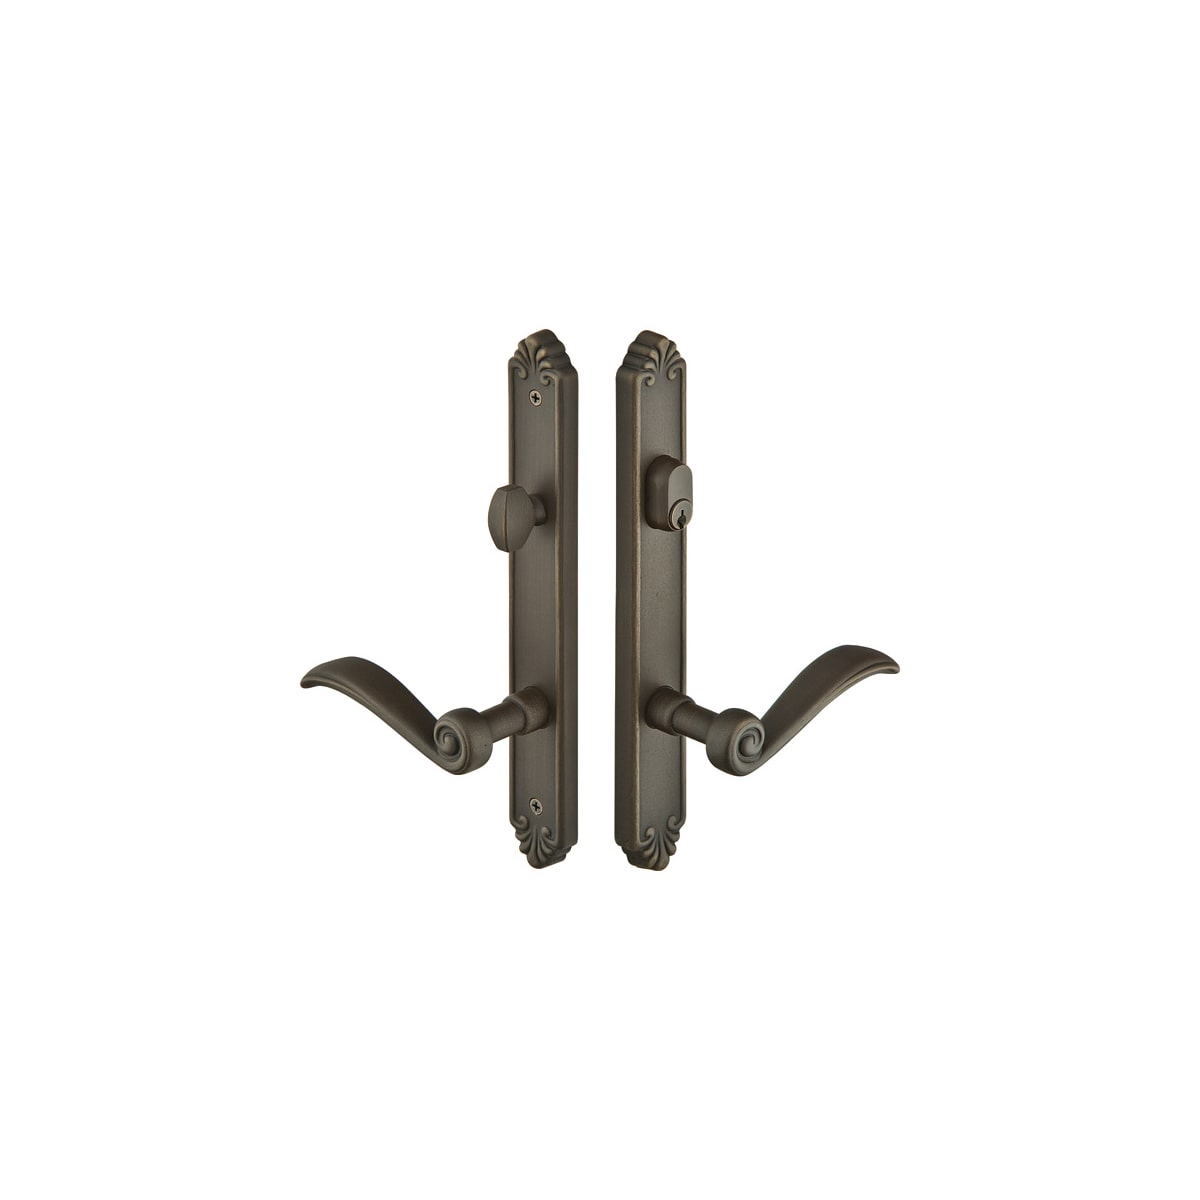 Emtek Lost Wax / Tuscany Bronze Door Configuration 3 Passage Multi Point Narrow Trim Lever Set with American Cylinder Above Handle